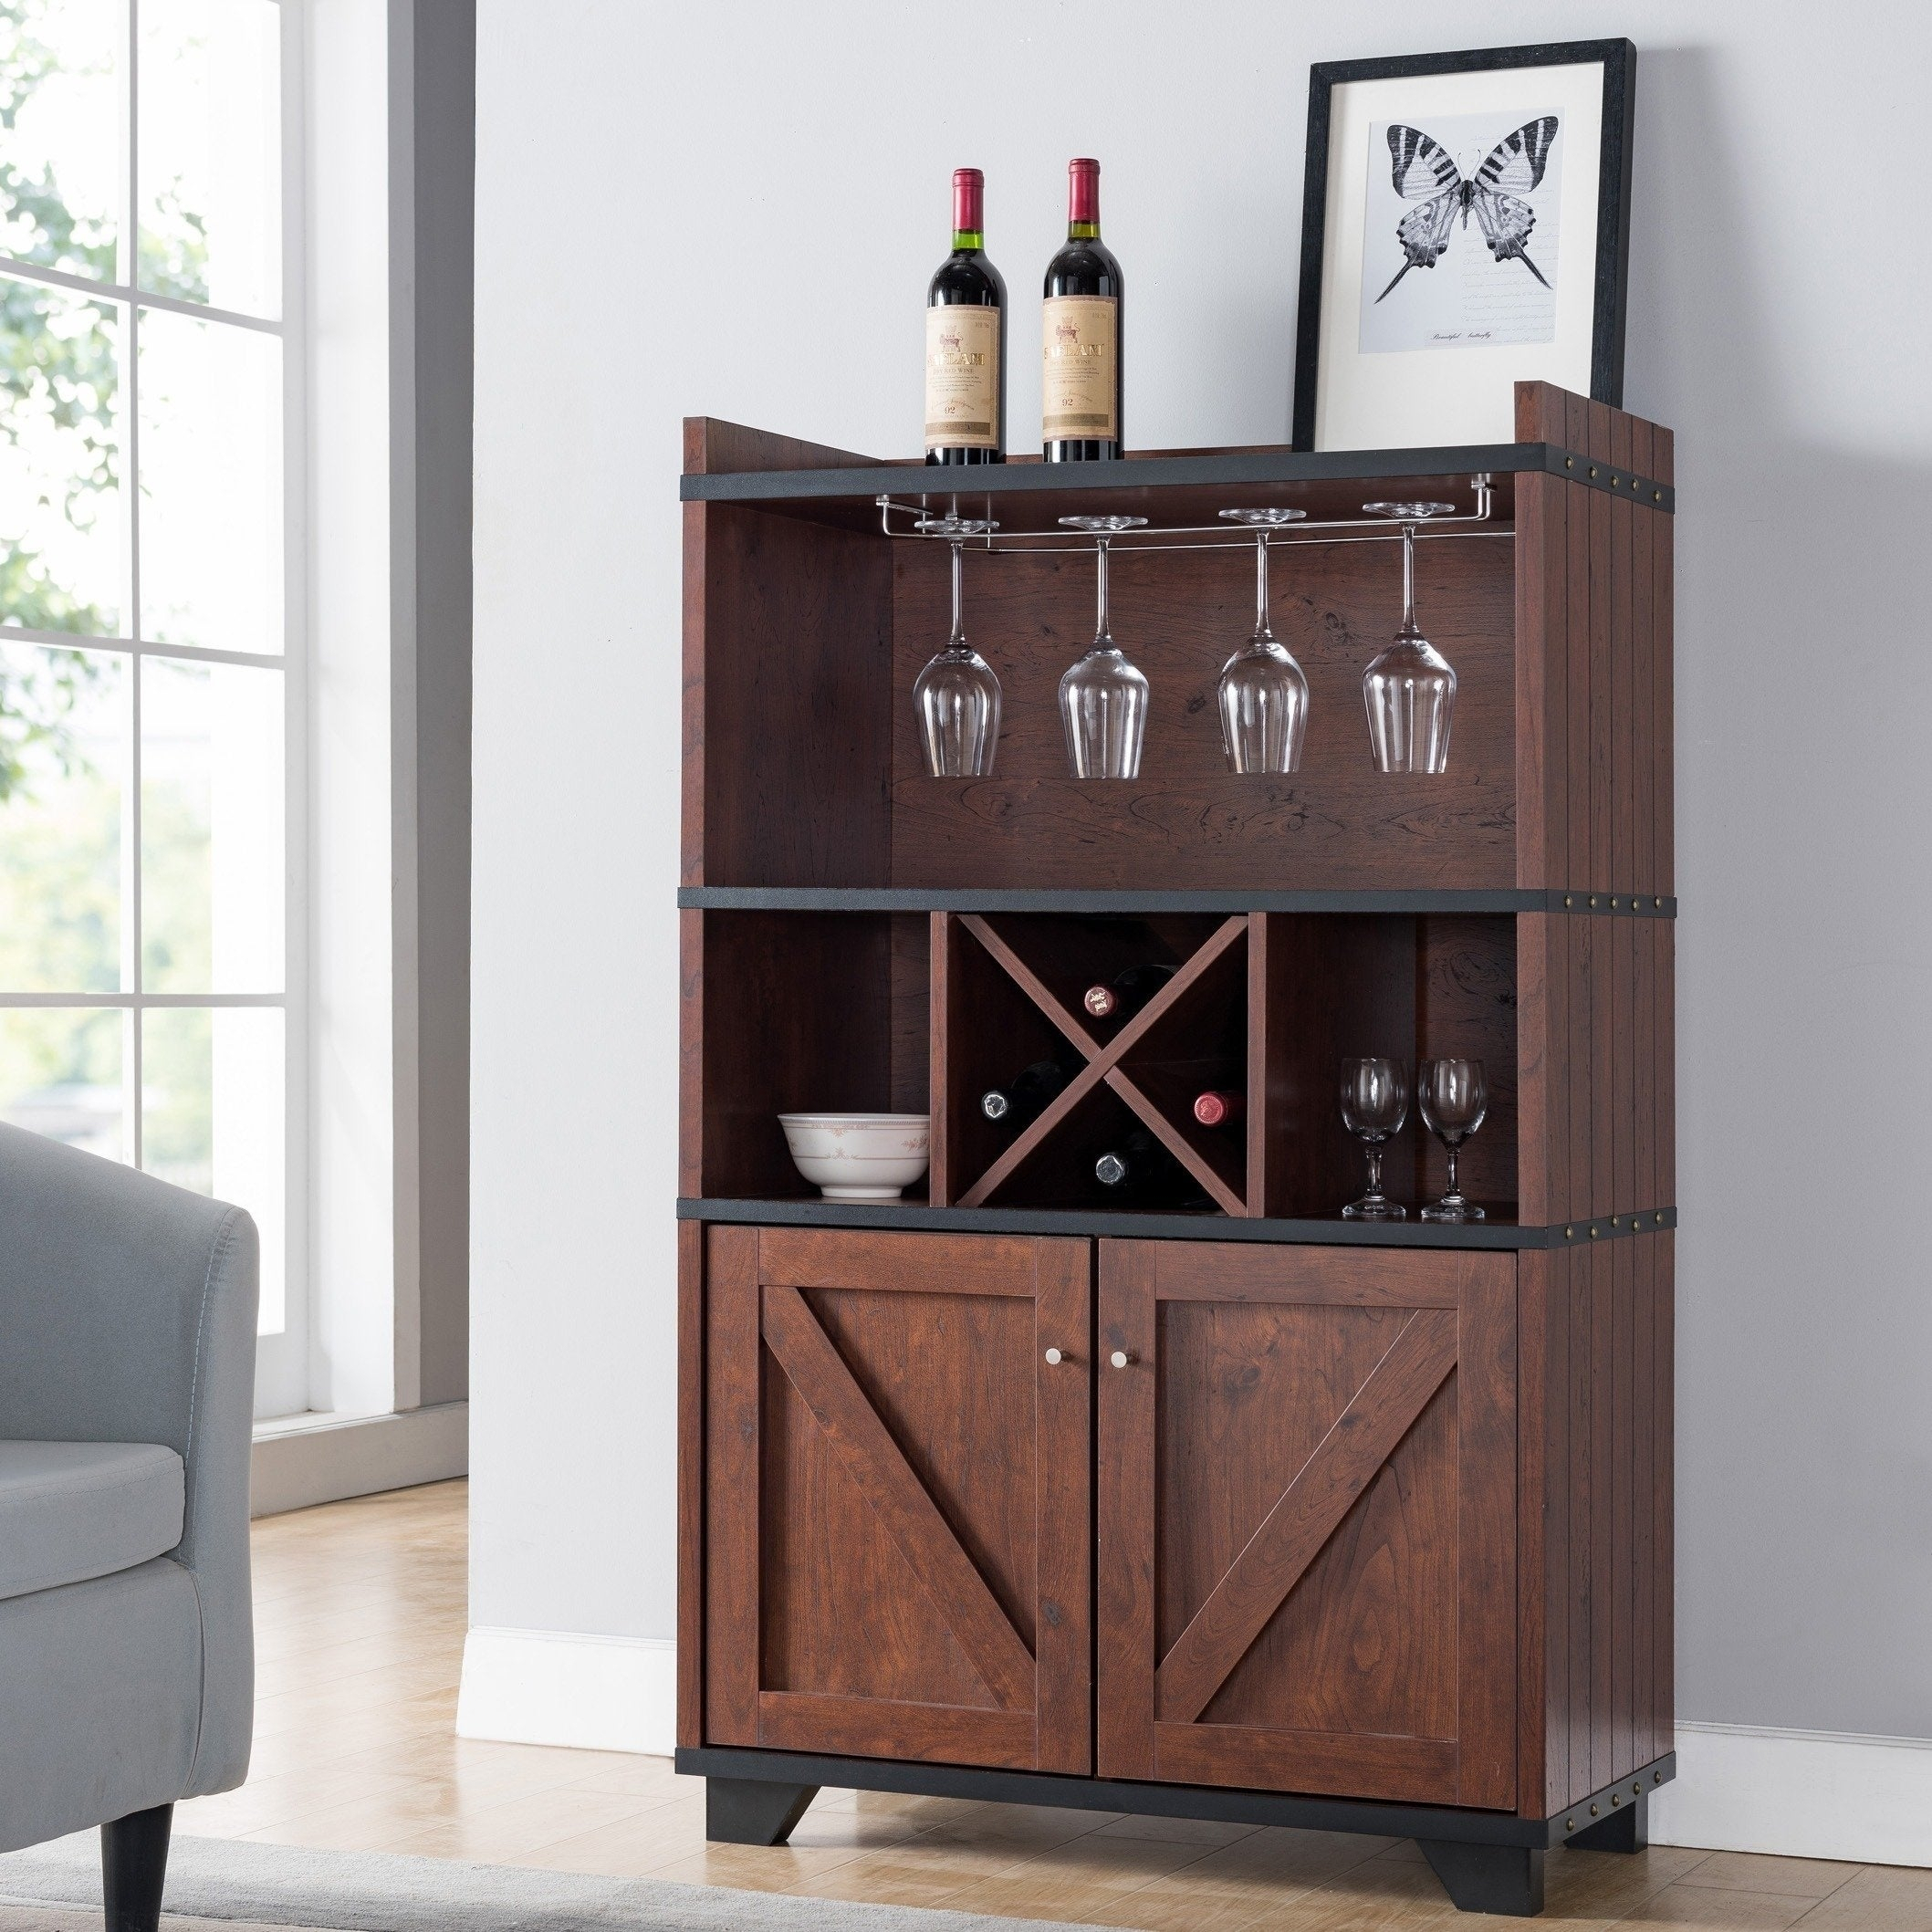 Furniture Of America Wesleyan Rustic Farmhouse Wine Cabinet Buffet Regarding Wooden Buffets With Two Side Door Storage Cabinets And Stemware Rack (View 2 of 30)